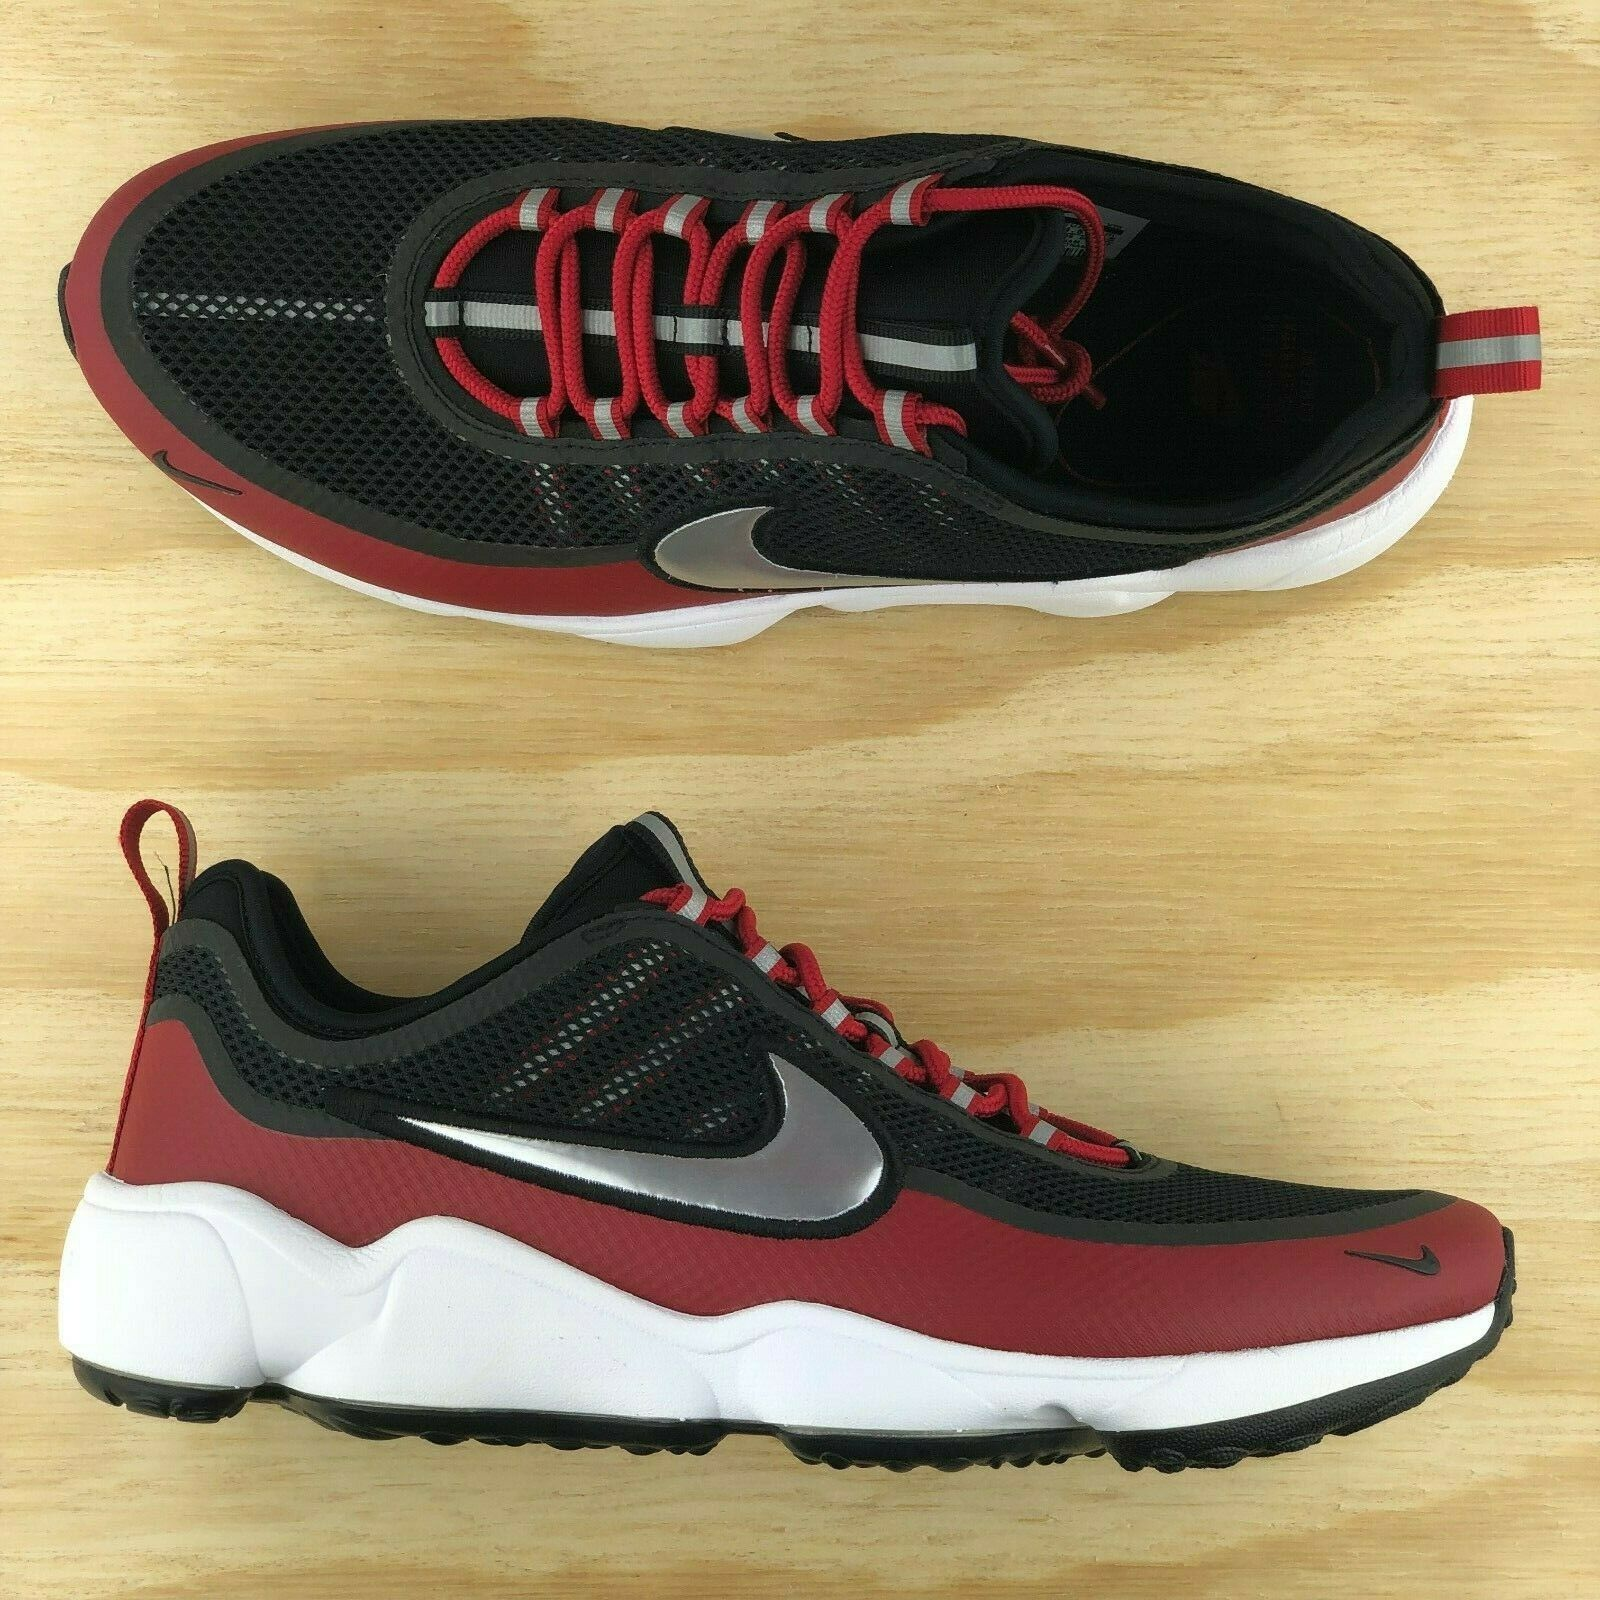 cheaper 447e9 fda65 Nike Air Zoom Spiridon Ultra Black Red White Running Shoes 876267 005 Multi  Size